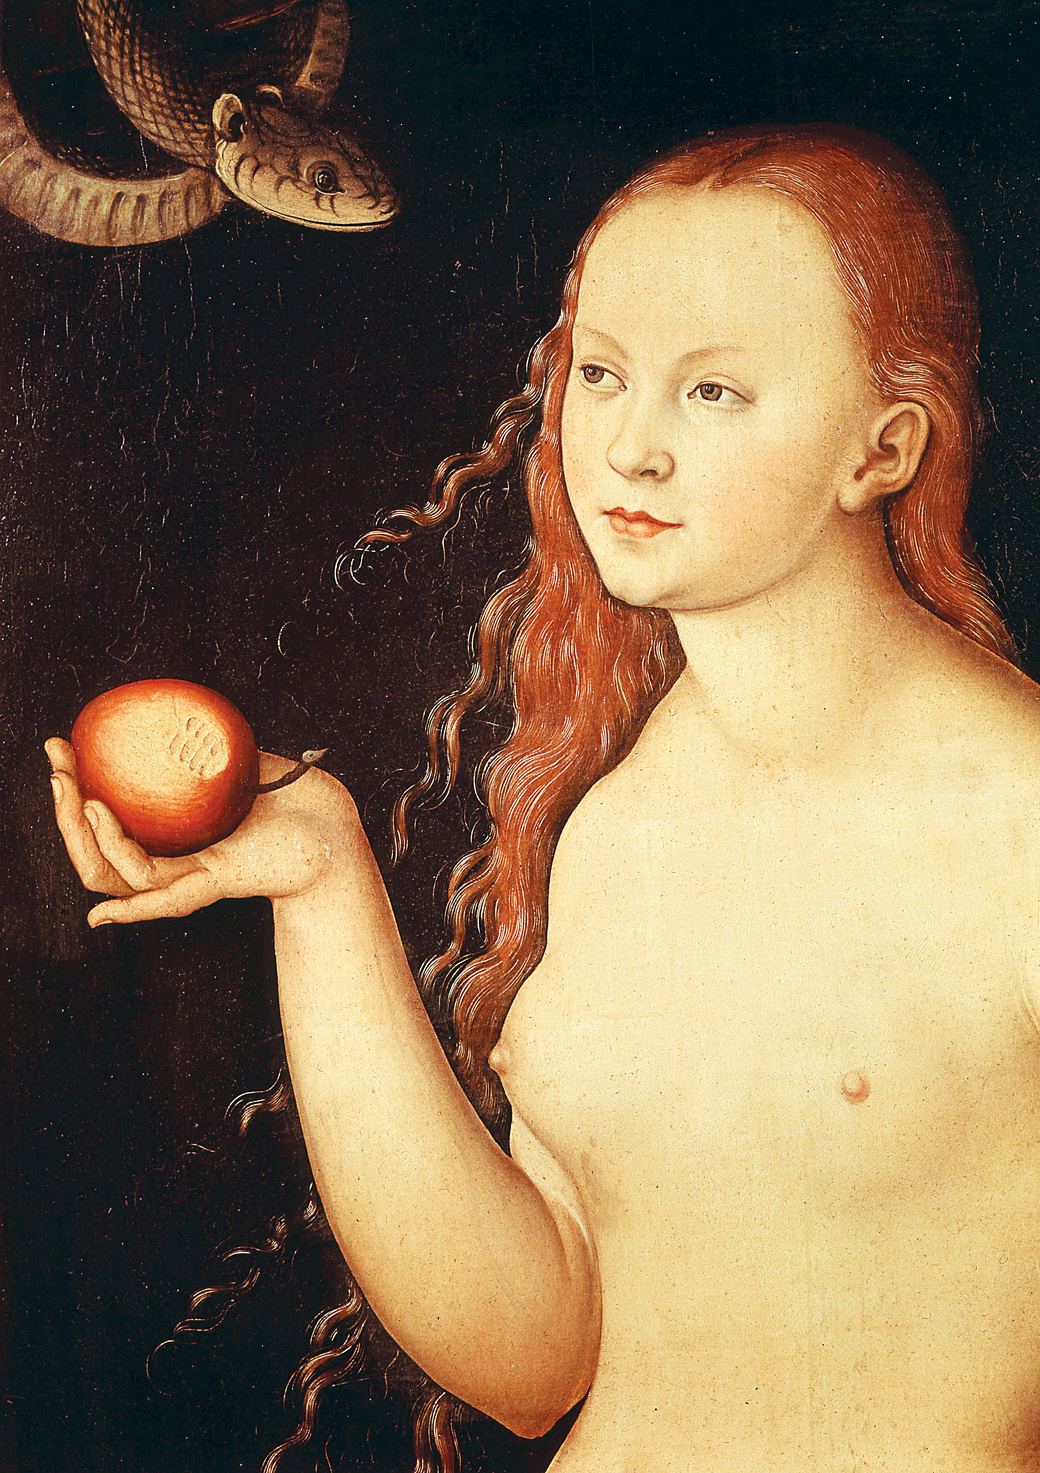 Adam and Eve (detail), by Lucas Cranach the Elder, 1528. Uffizi Gallery, Florence, Italy.